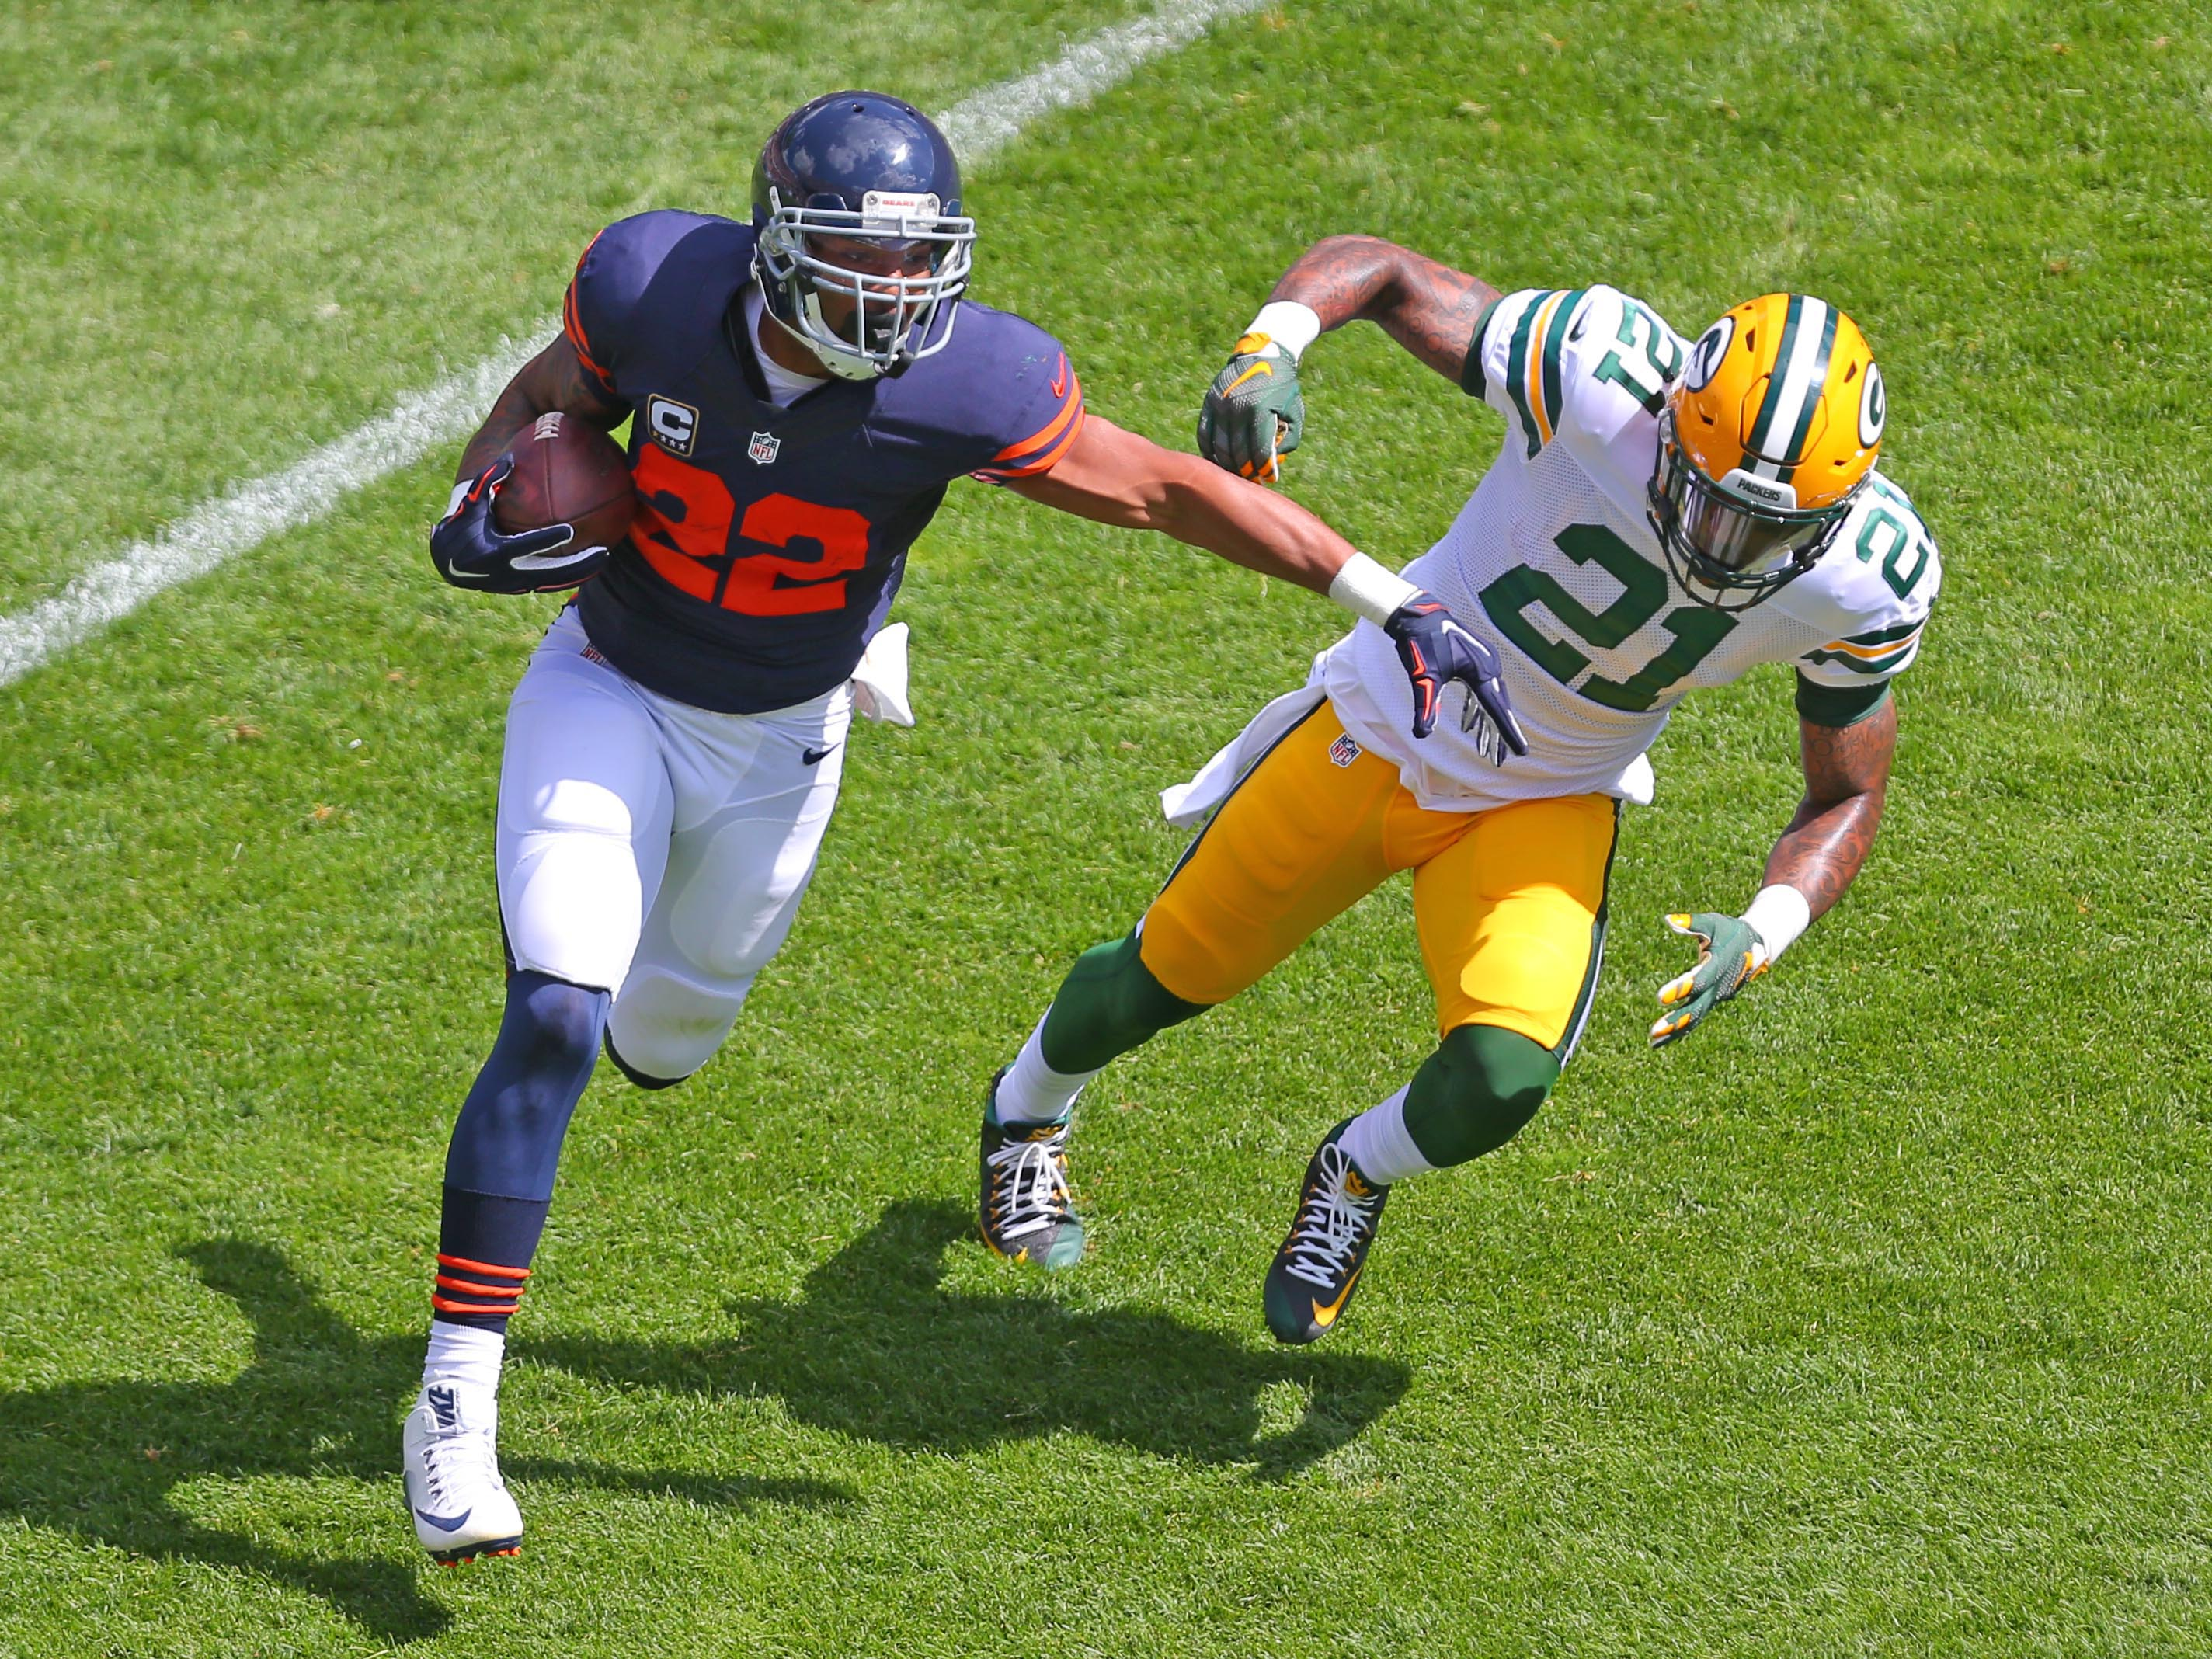 Matt Forte plans to retire as member of Chicago Bears